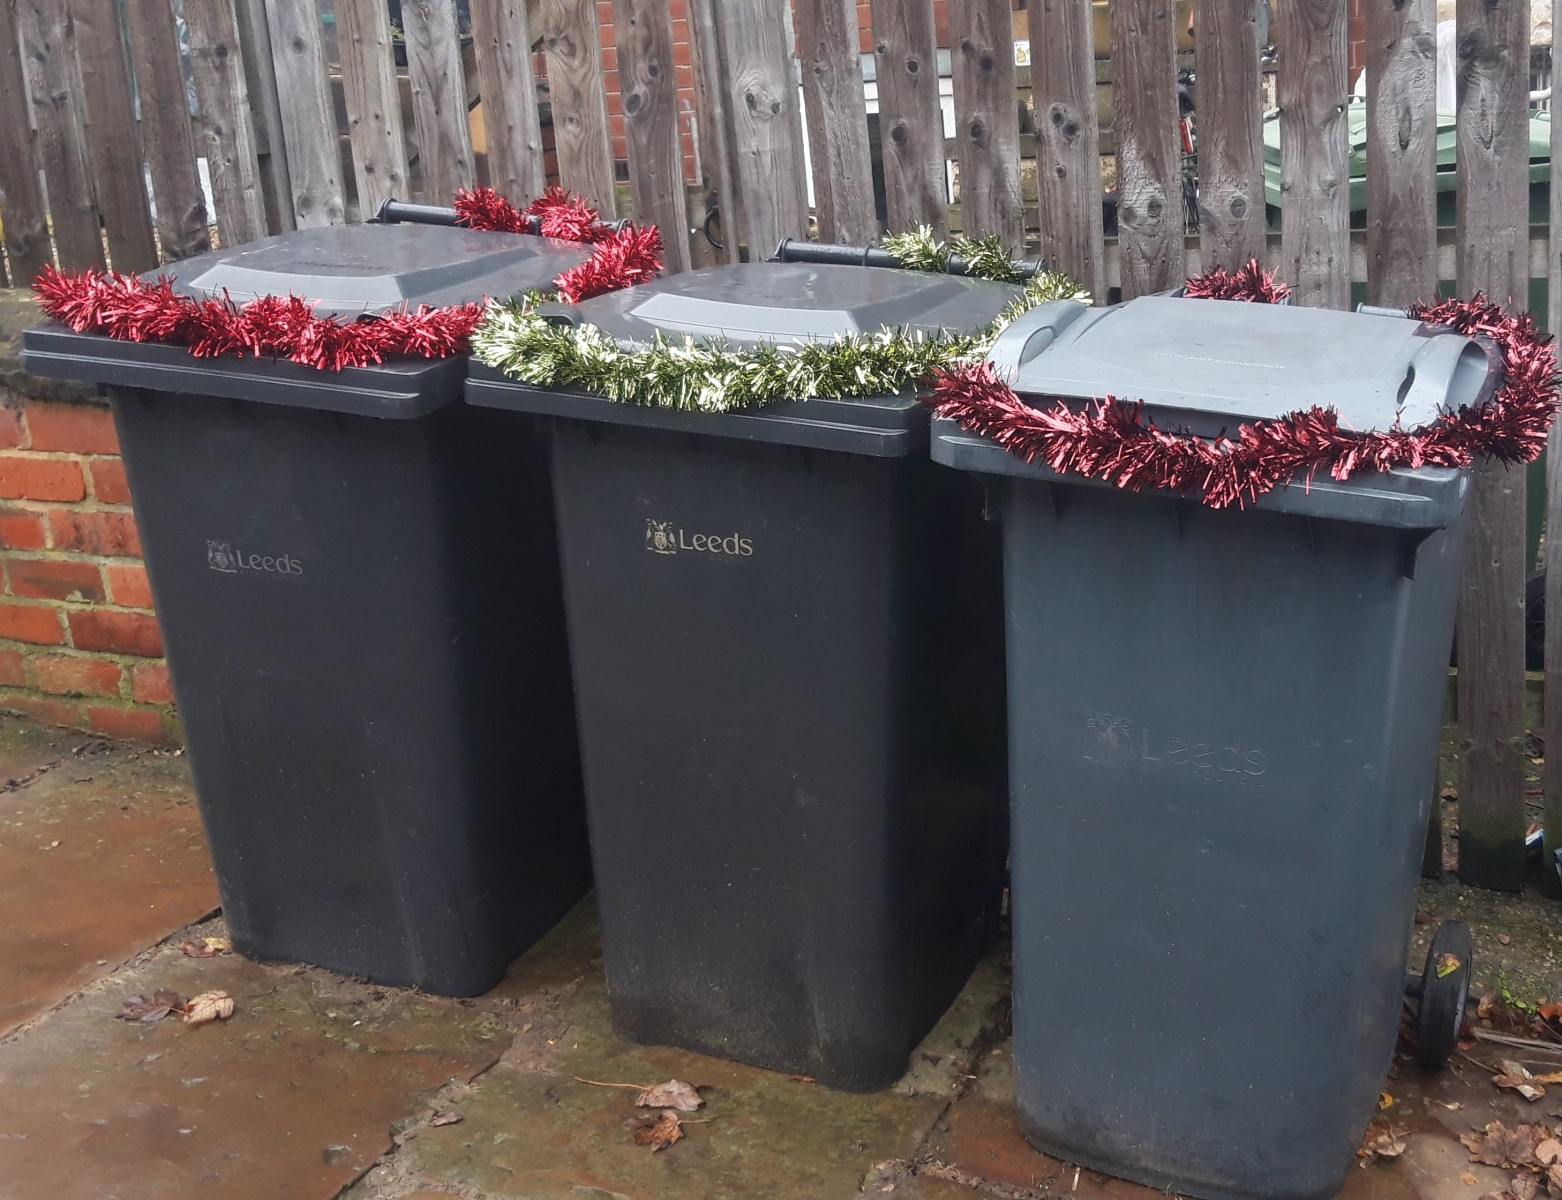 20191101_black bins w tinsel 1